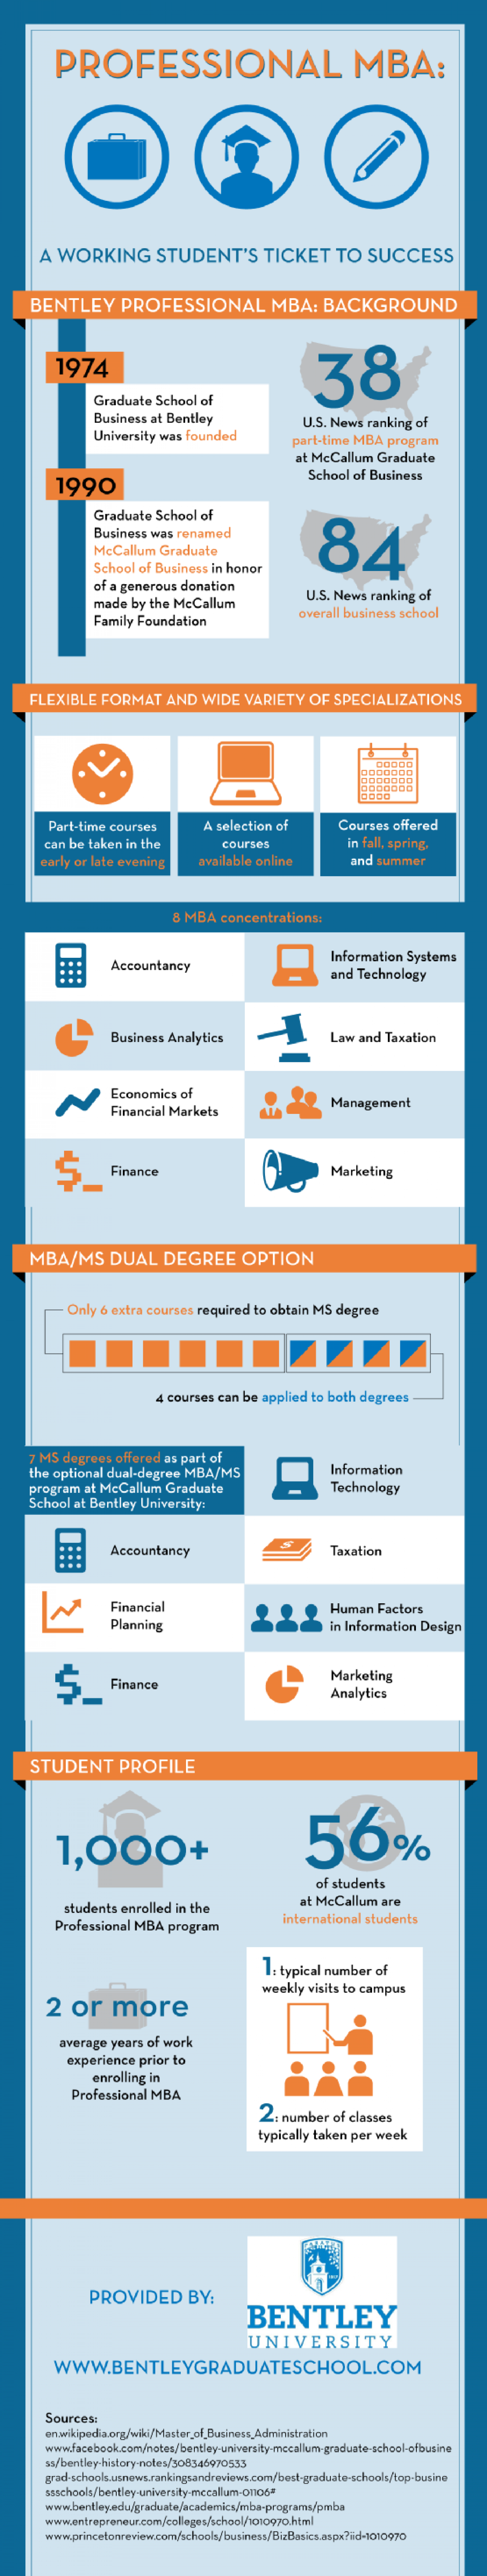 Professional MBA: A Working Student's Ticket to Success Infographic